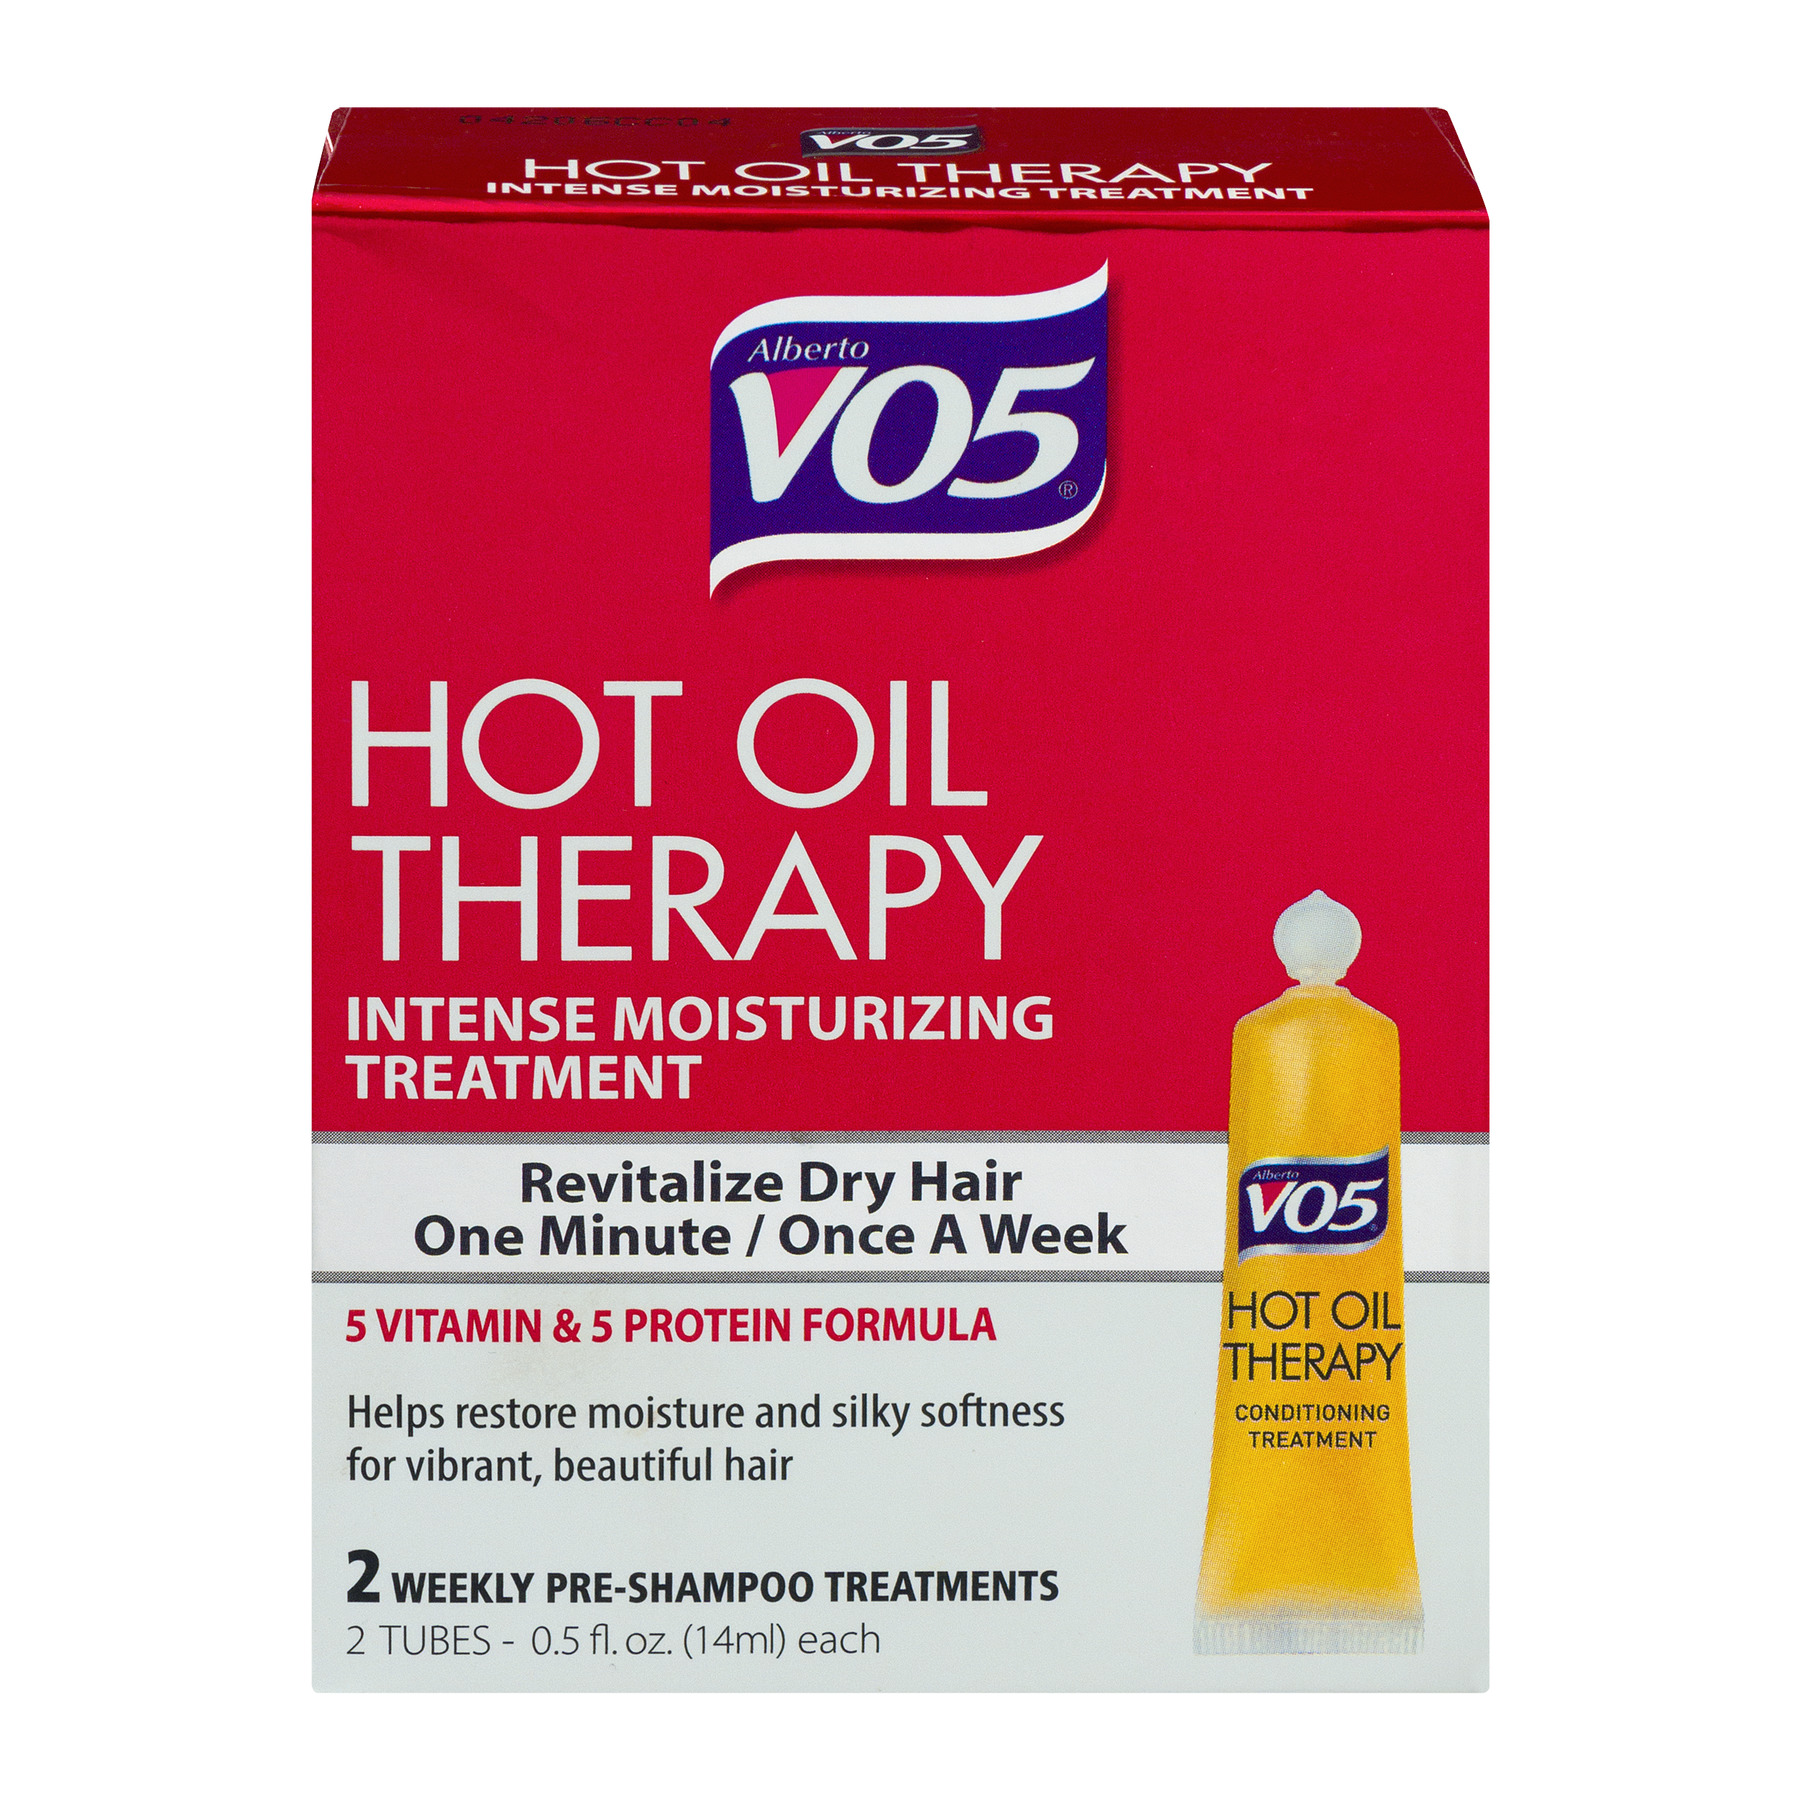 Alberto VO5 Hot Oil Therapy Conditioning Treatment 2-0.5 Fl Oz Tubes